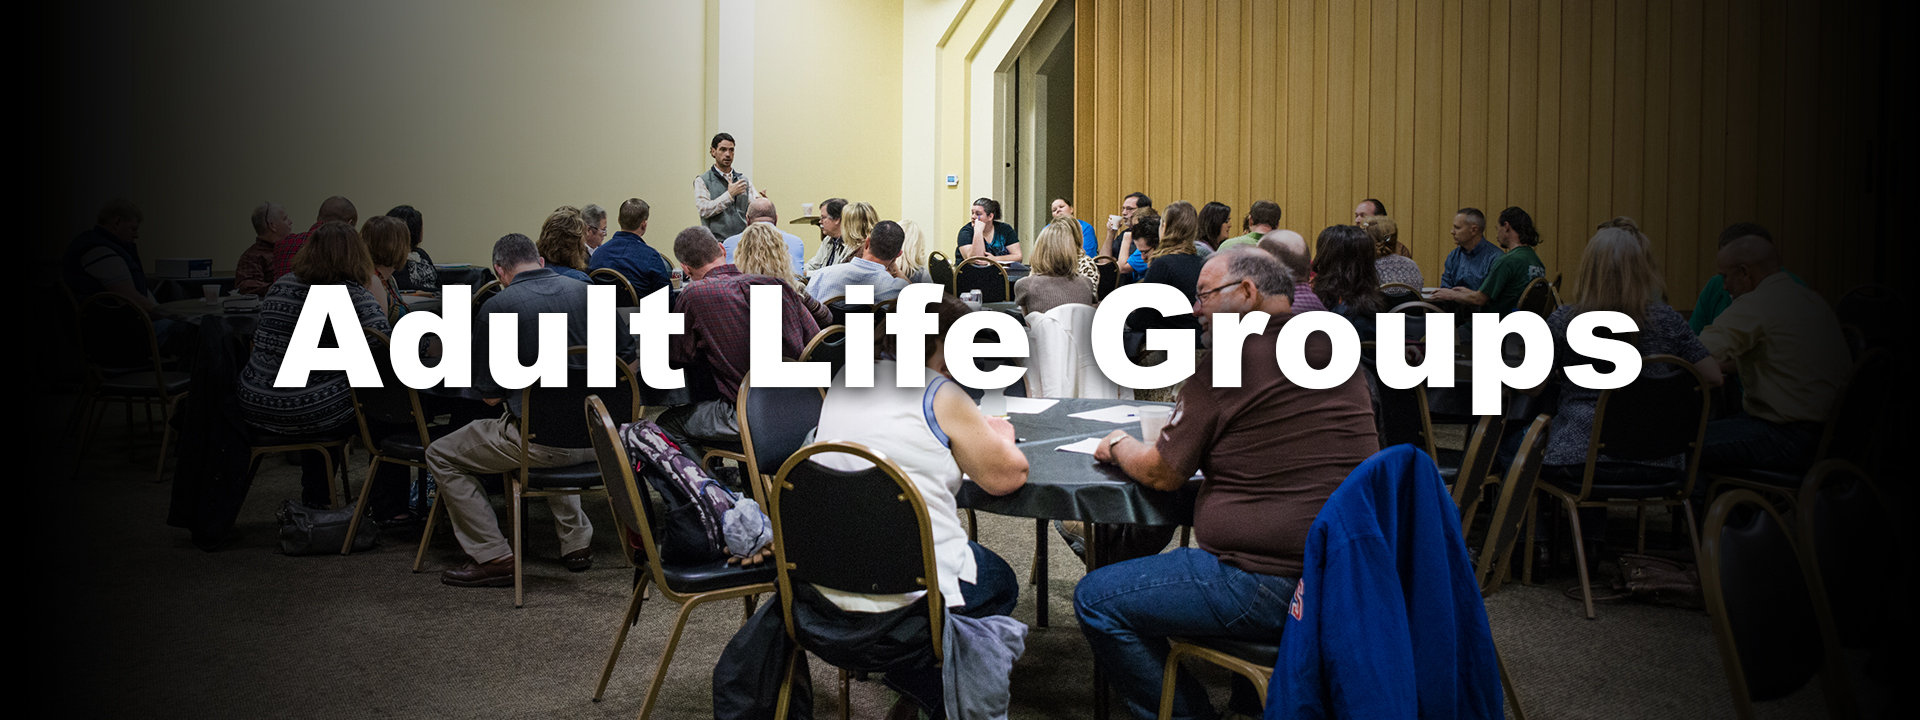 FBC Adult Life Groups